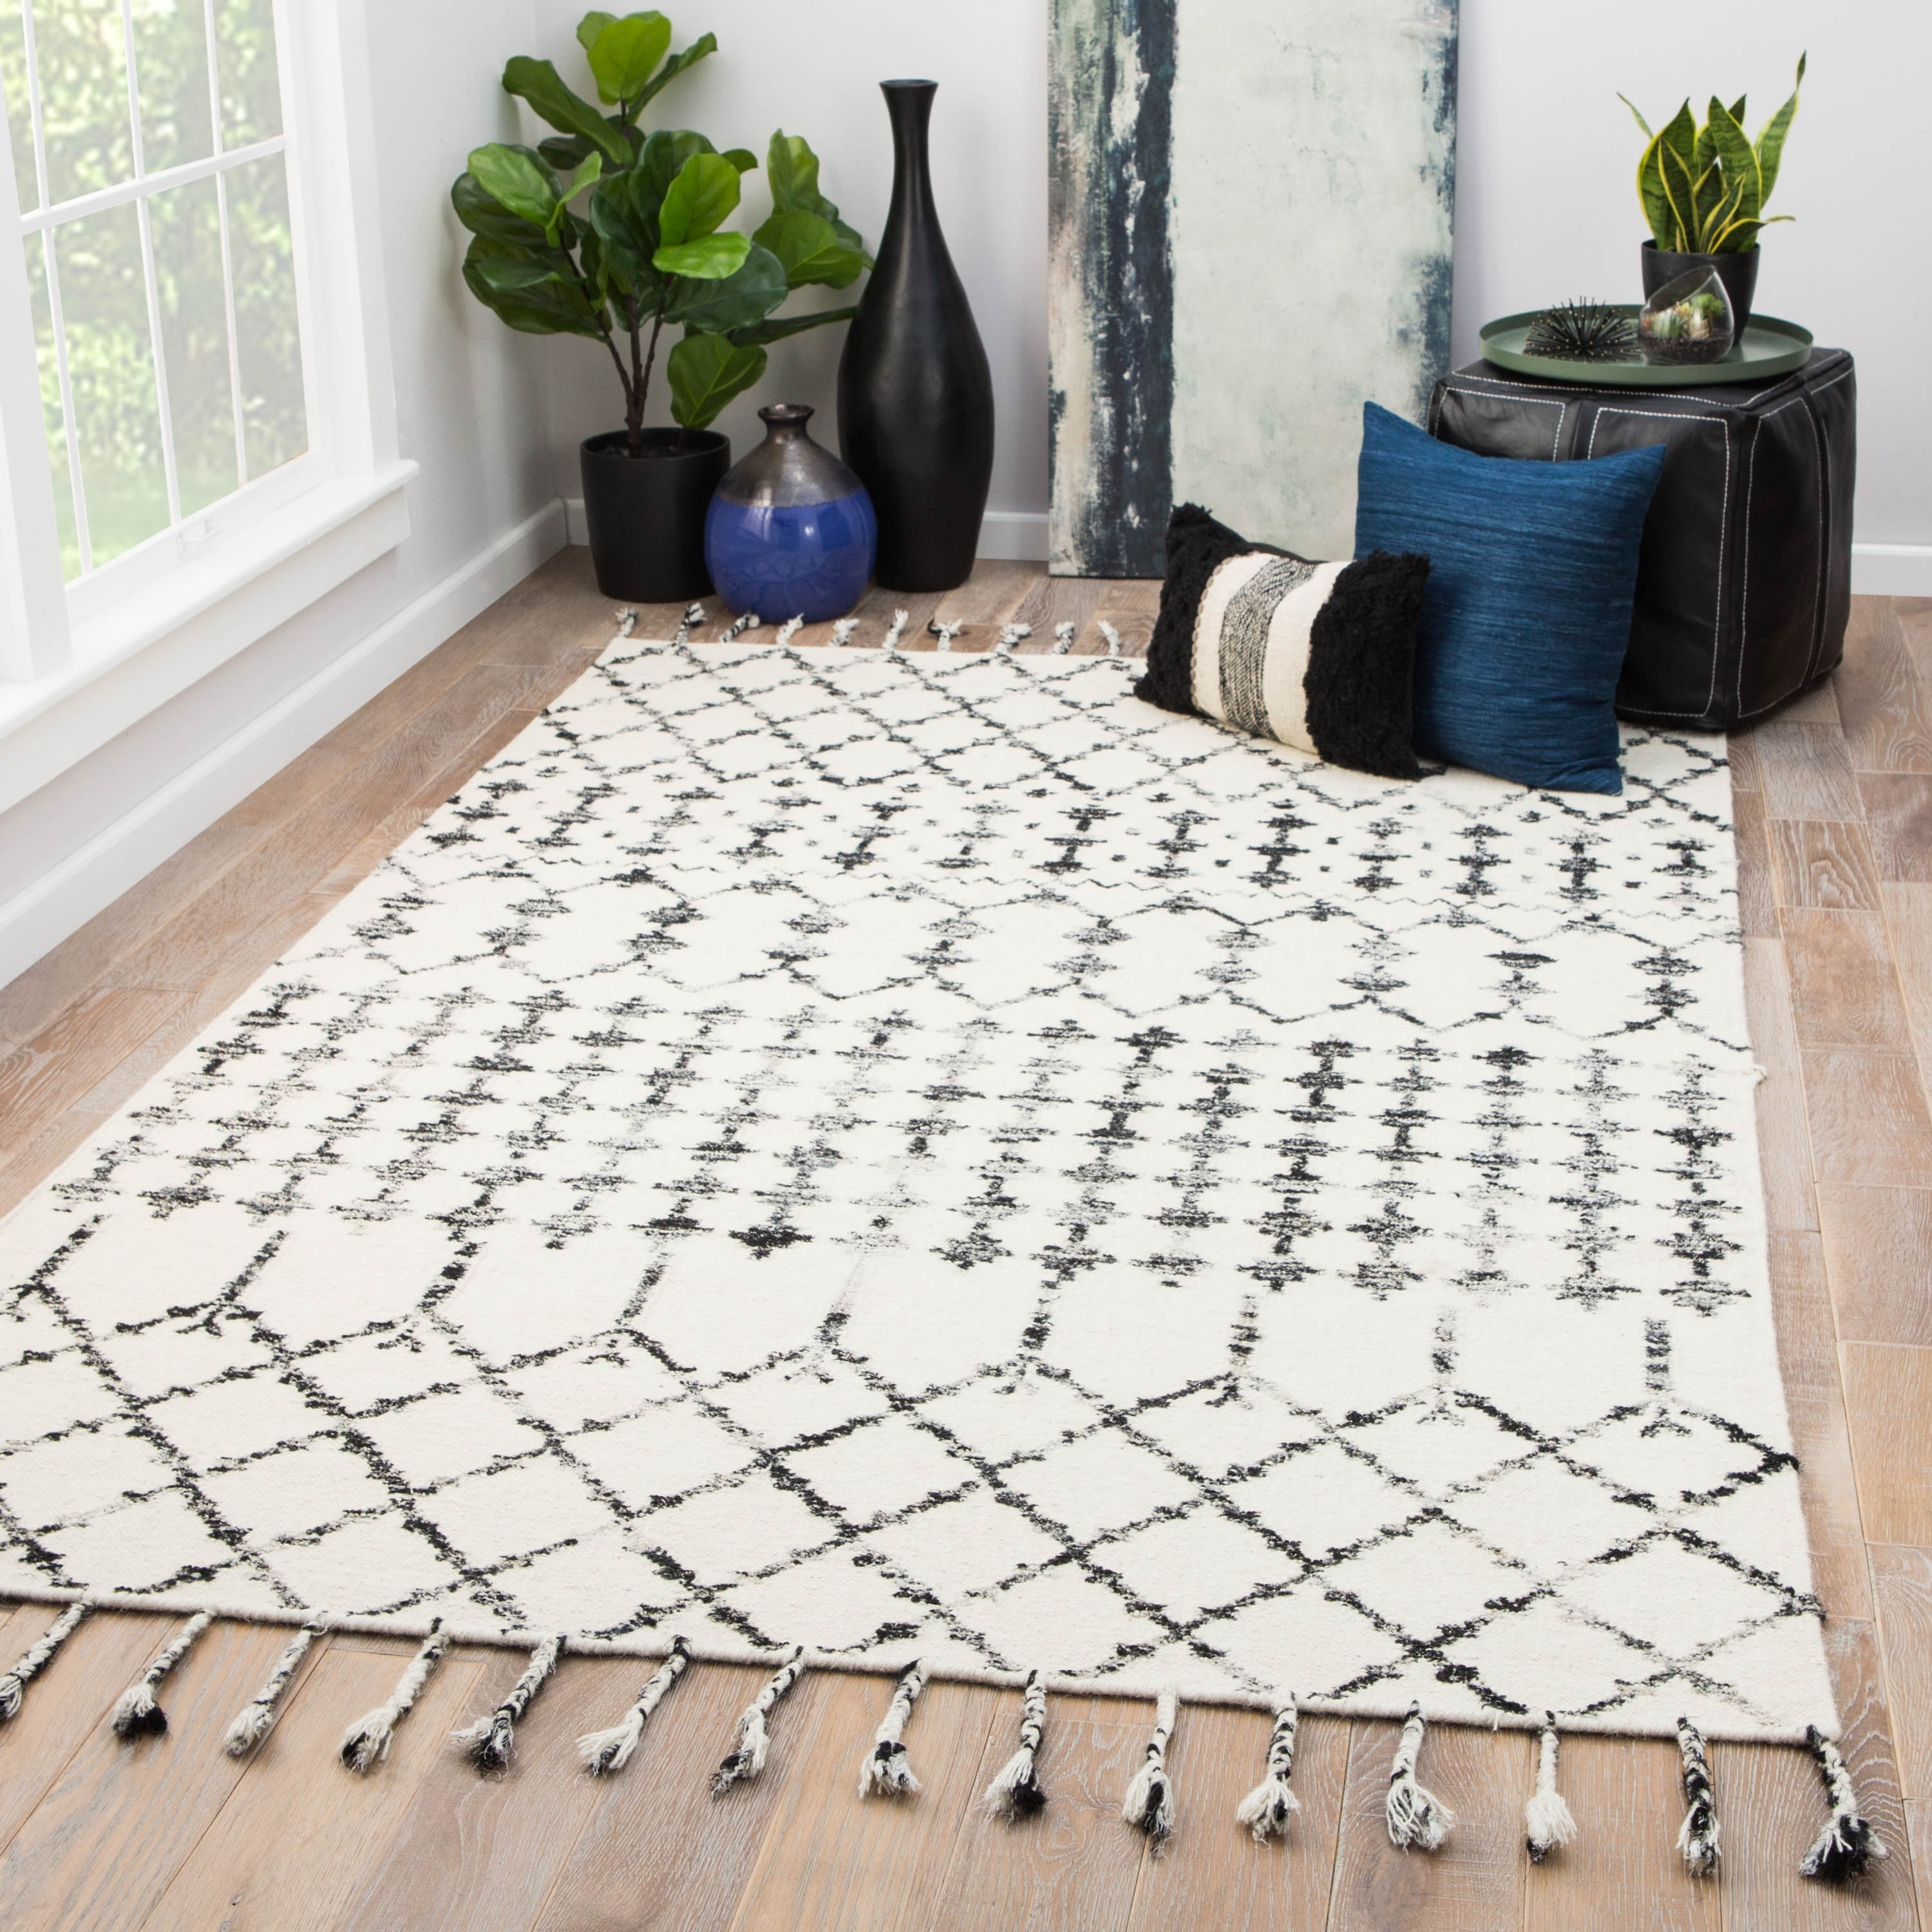 Shop For Salita Handmade Geometric Ivory Black Area Rug Get Free Delivery On Everything At Overstock Your Online Home Decor Store Get 5 In Rewards With Club O 20582633